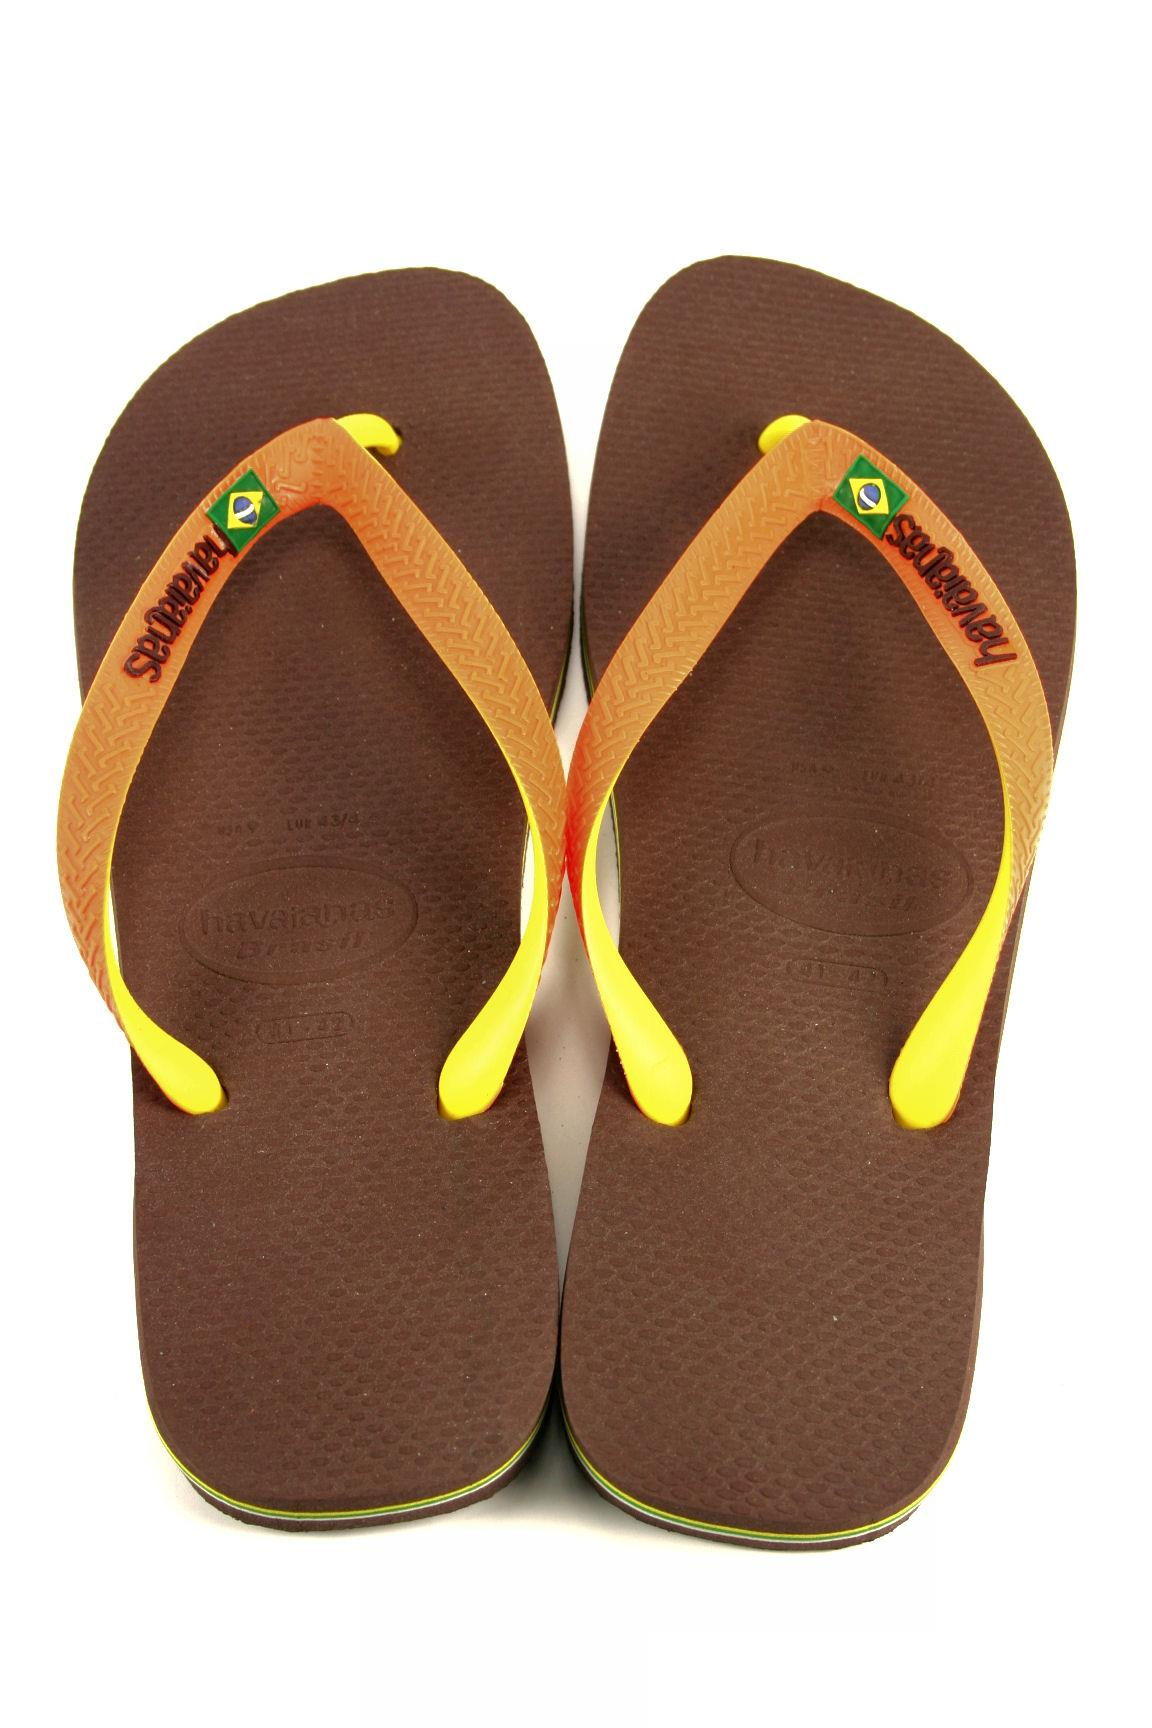 8fc5be4b2034 Havaianas Brasil Mix Dark Brown Orange HAVAIANAS Flat Sandals